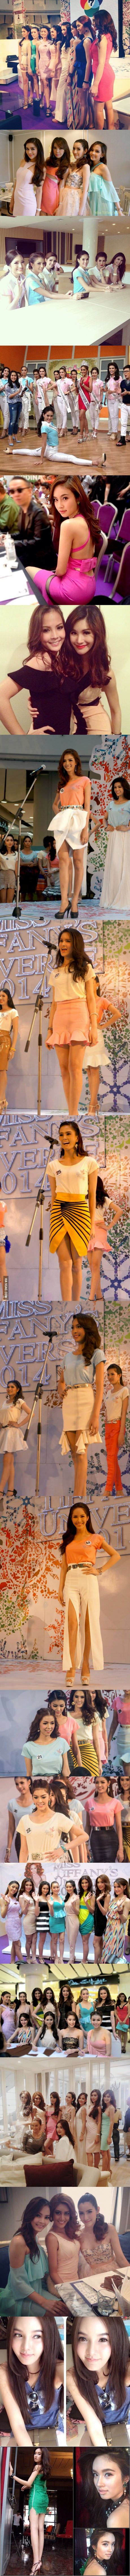 Definitely fooled me... The ladyboy pageant of Thailand!